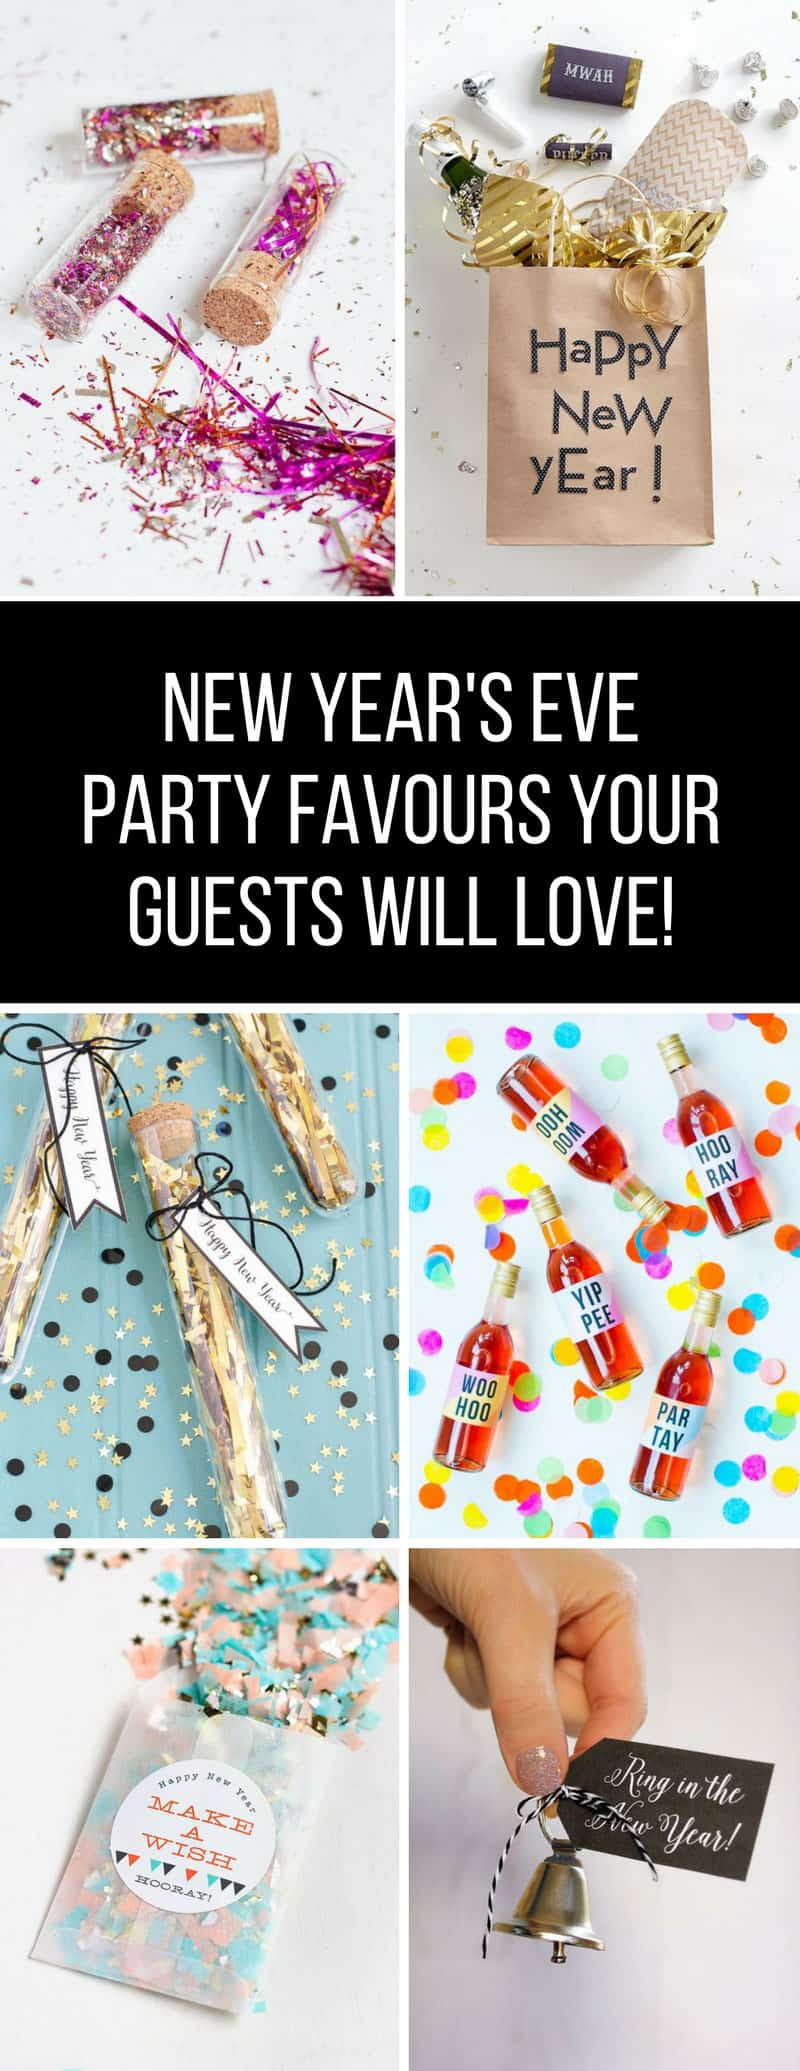 New Years Eve Party Favors - Loving these DIY party favors and your guests will too! Everything from confetti canons to Kiss Me kits for when the clock strikes 12! #NewYearsEve #NewYearsEve2018 #Party